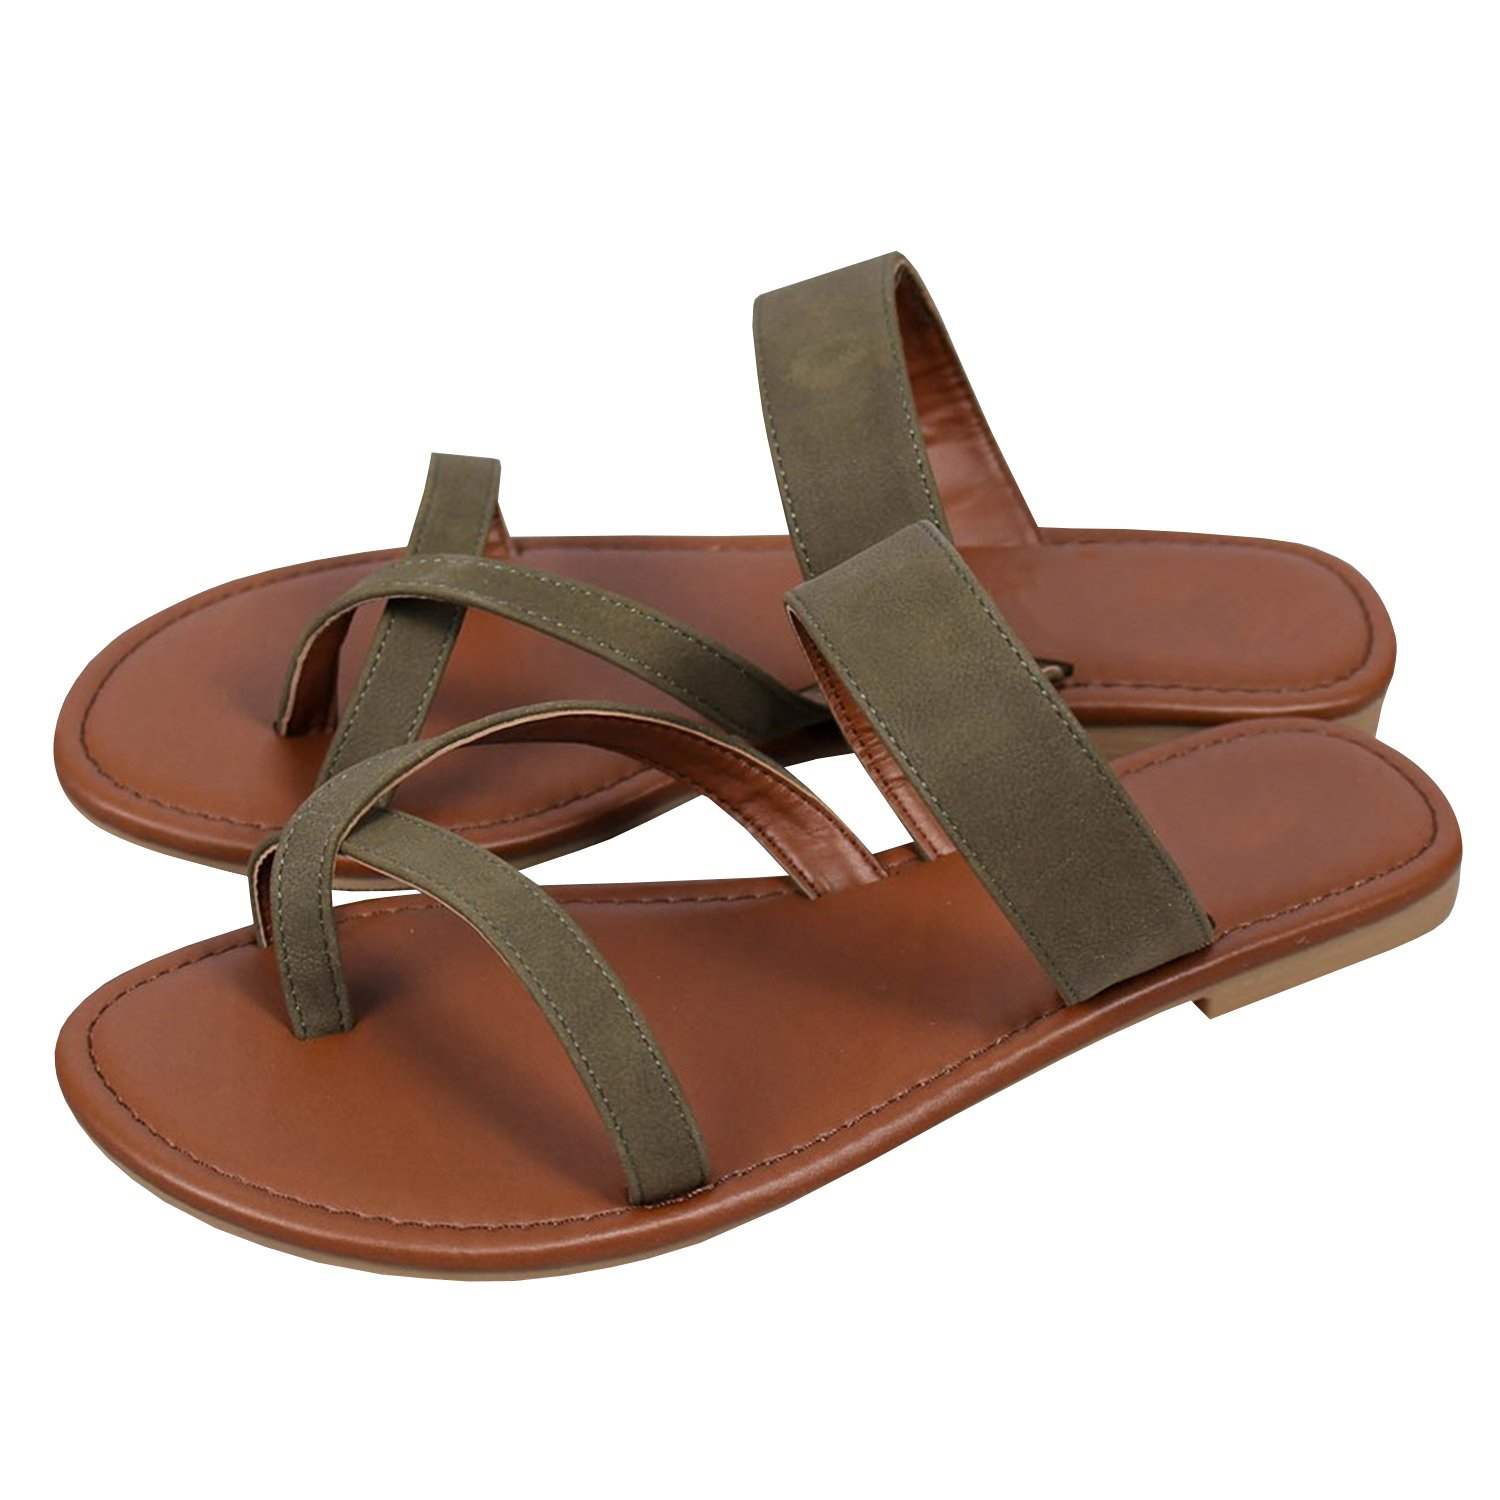 Womens Cross Toe Fashion Flat Ankle Buckle Thong Flip Flop Strappy Summer Sandals